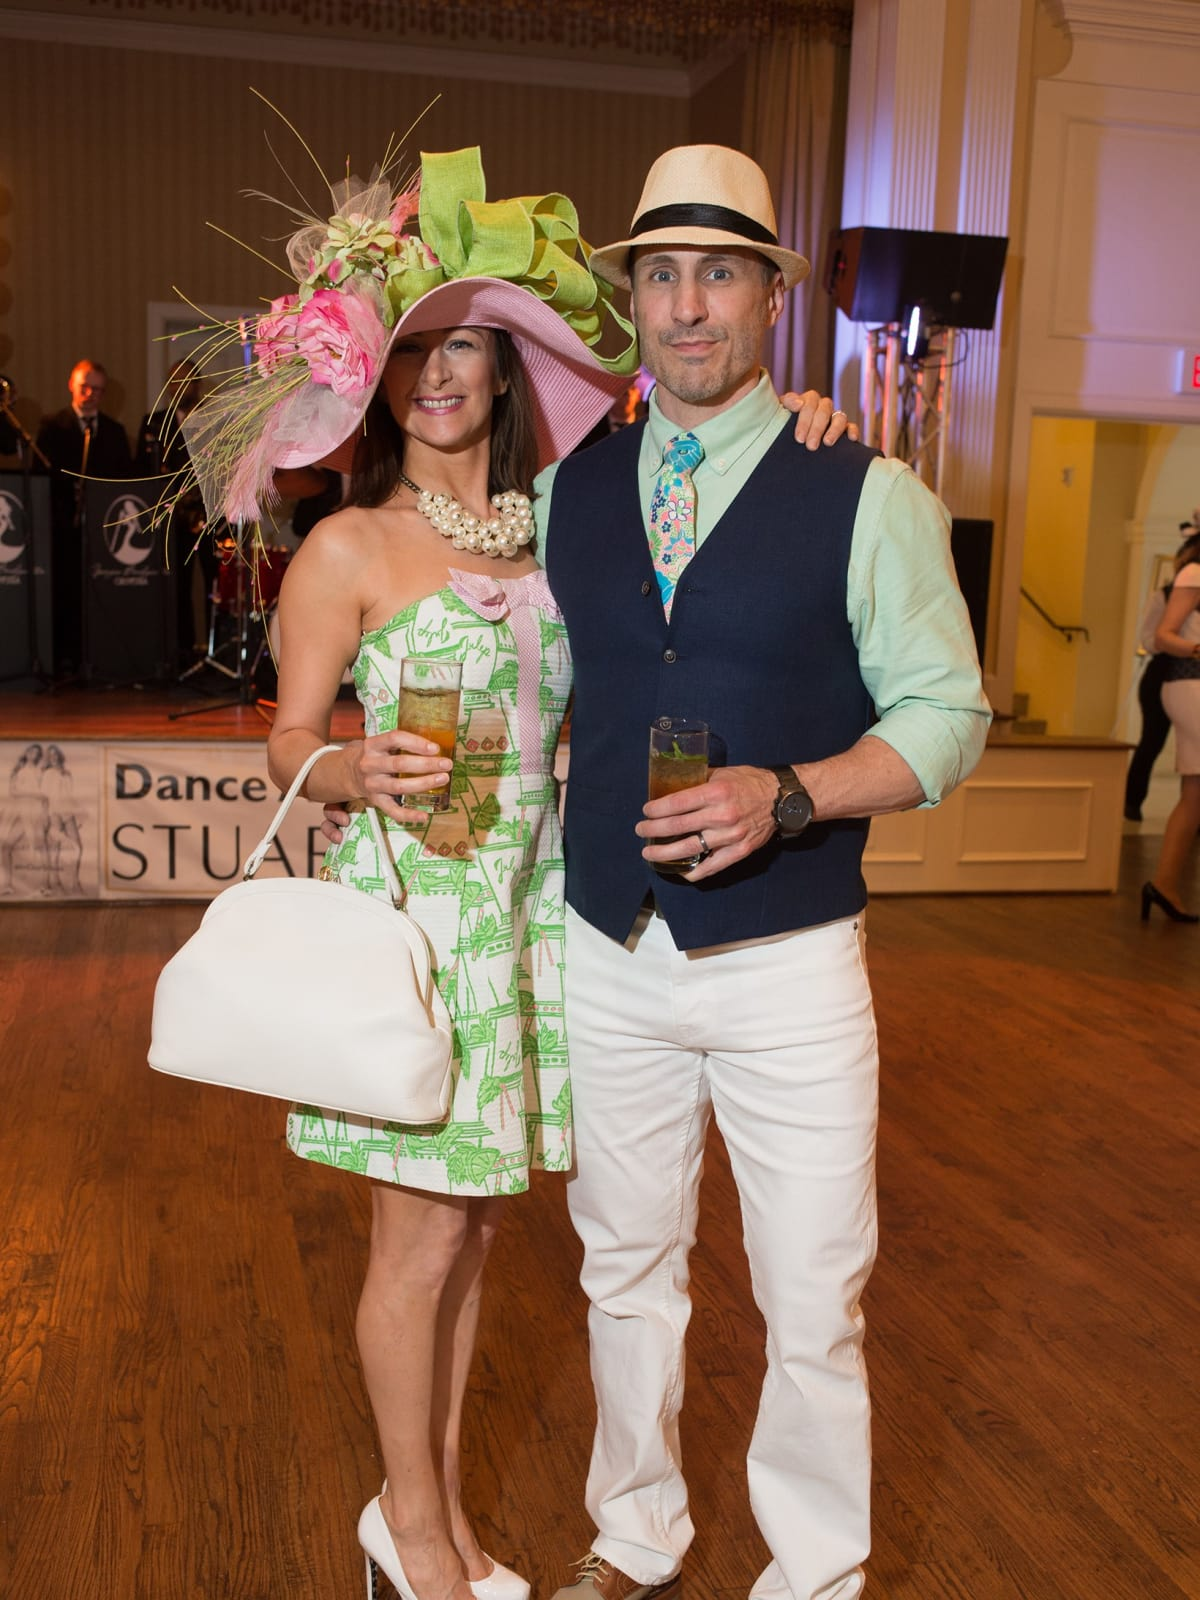 Day at the Races 2018, Shannon and Jeff Showah